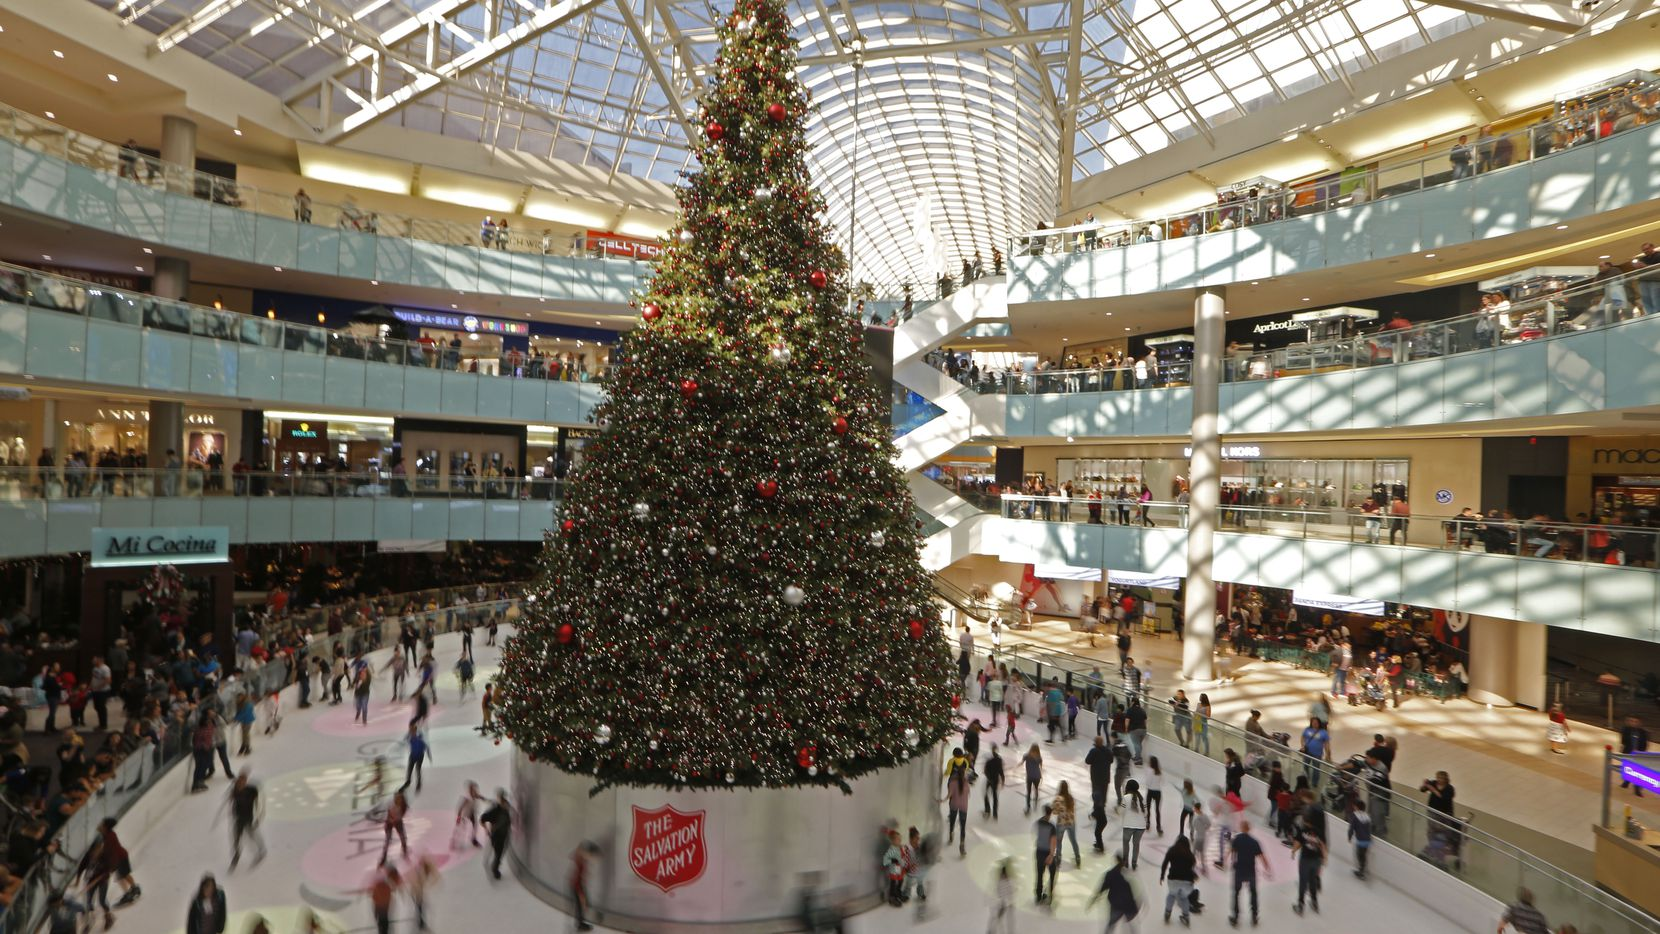 Christmas Dallas Ft Worth Events Dallas 2020 27 fun things to do the week of Nov. 28 Dec. 5 in Dallas Fort Worth